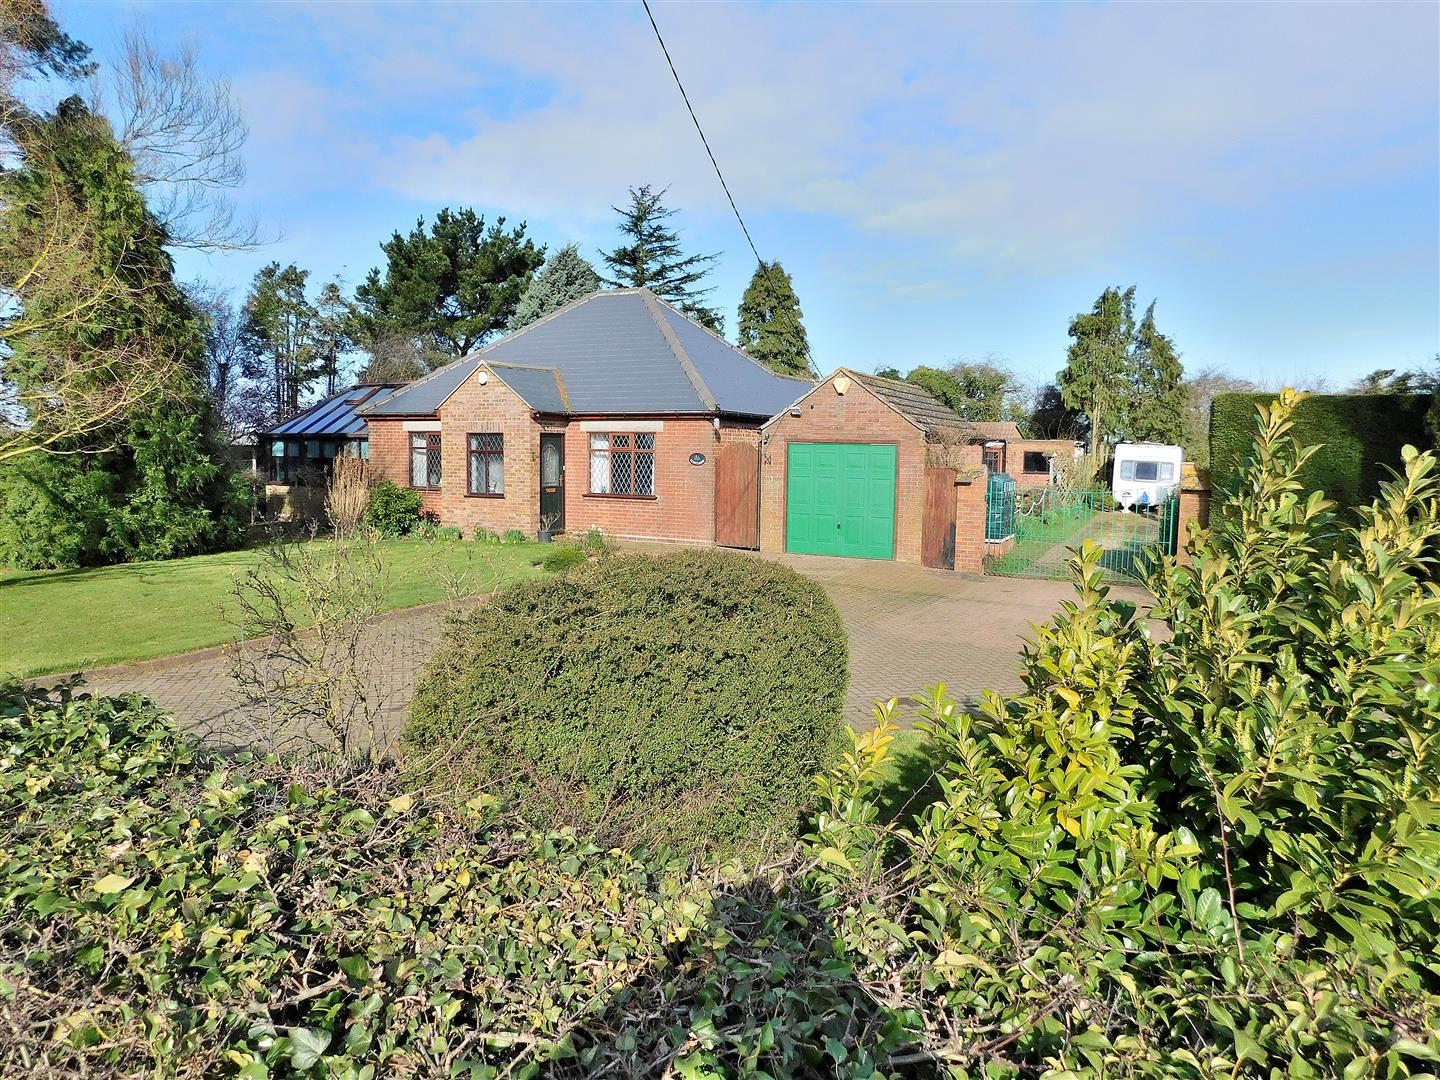 3 bed detached bungalow for sale in King's Lynn, PE34 4FF 0